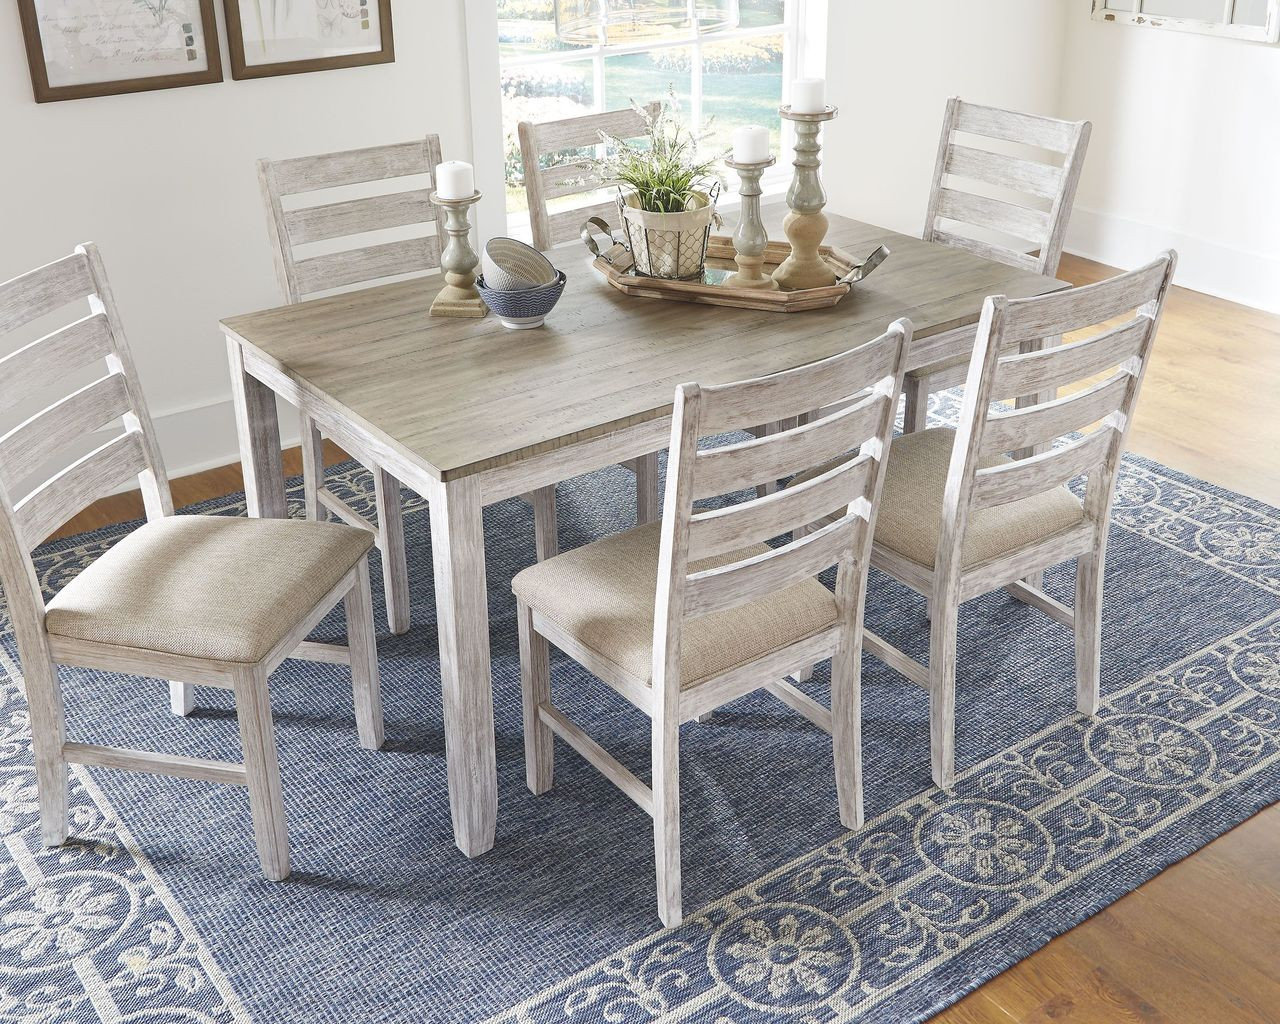 Pleasing Skempton White Light Brown Dining Room Table Set 7 Cn Download Free Architecture Designs Rallybritishbridgeorg